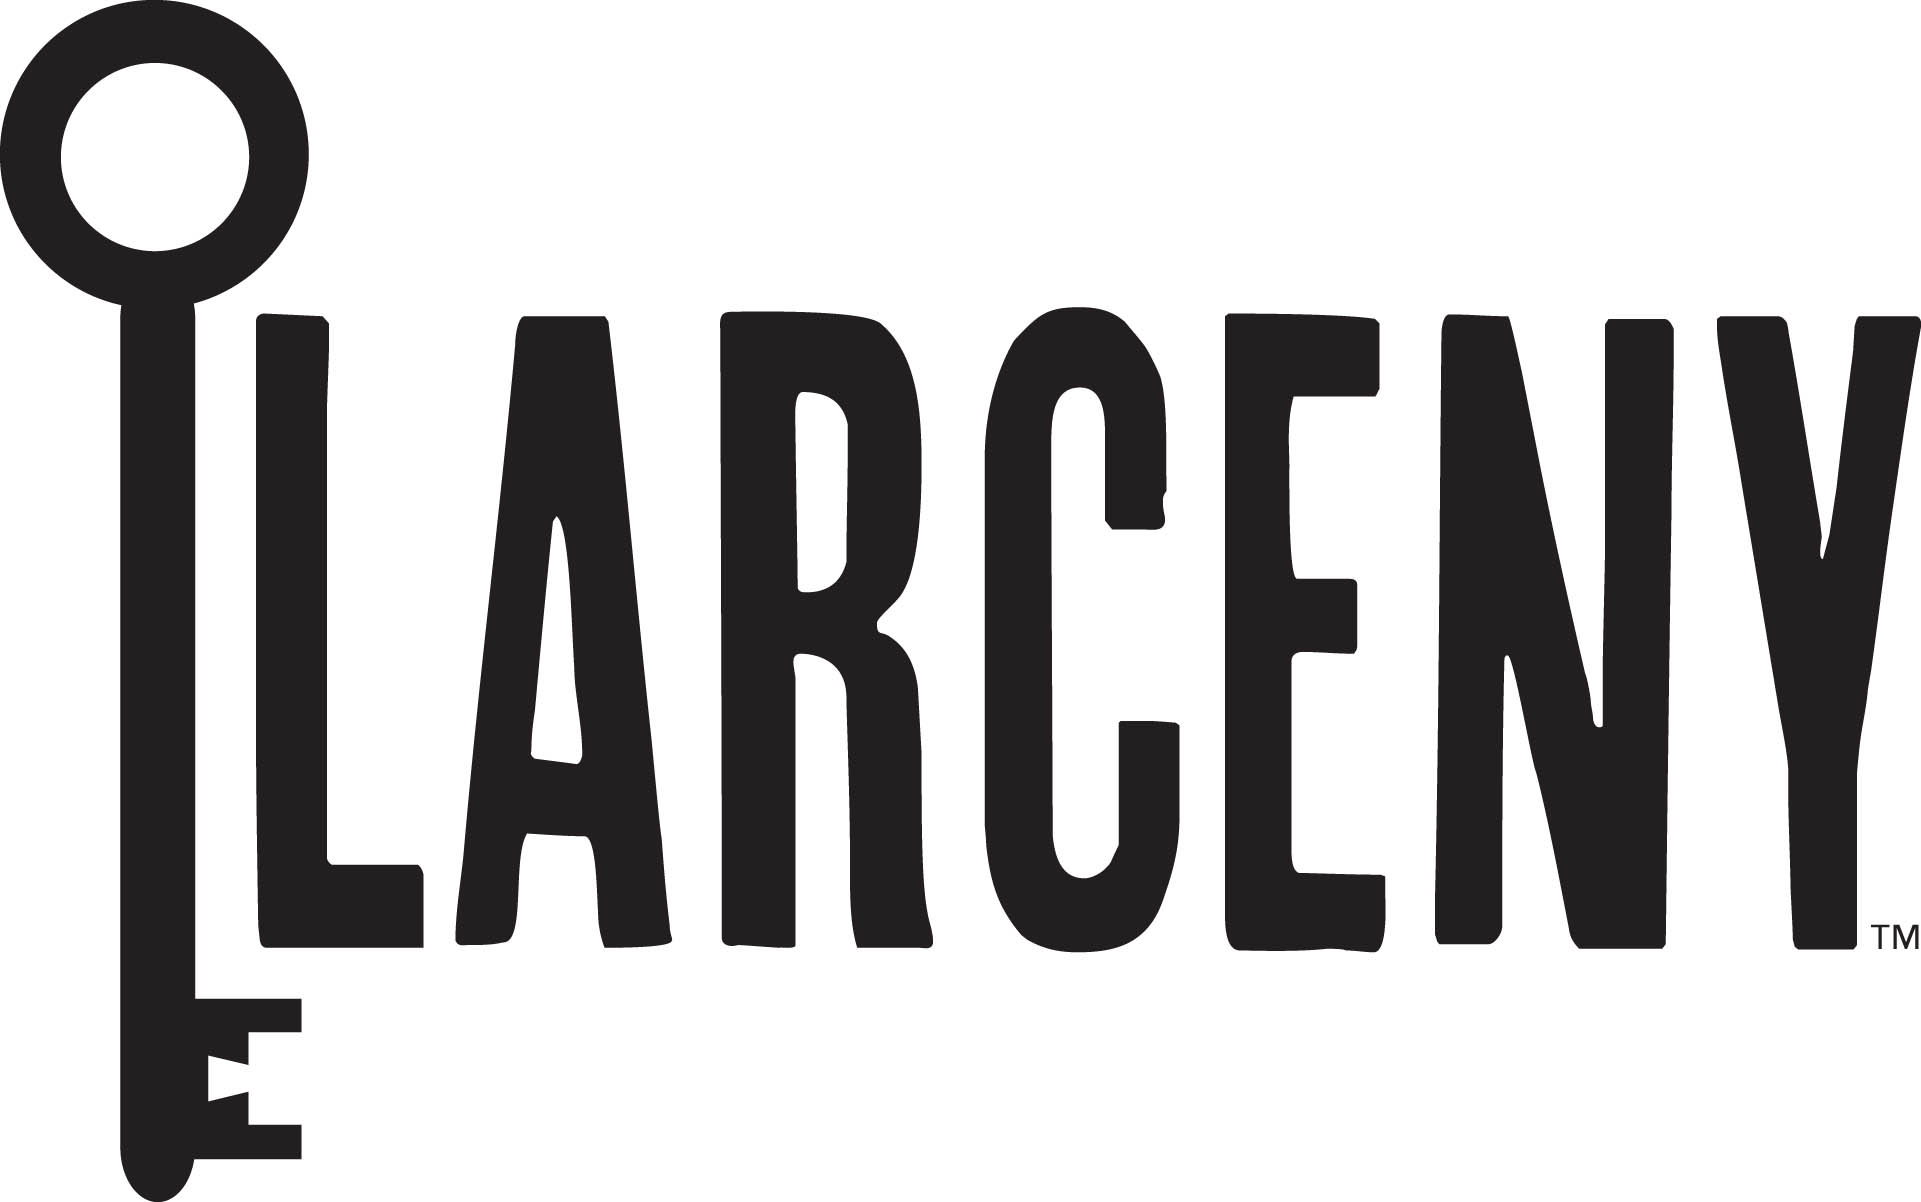 Rndc Larceny Logo Please Visit The Colleges Website To Learn More About Our Programs Here And Facebook Page For Latest Details Pop Up Events